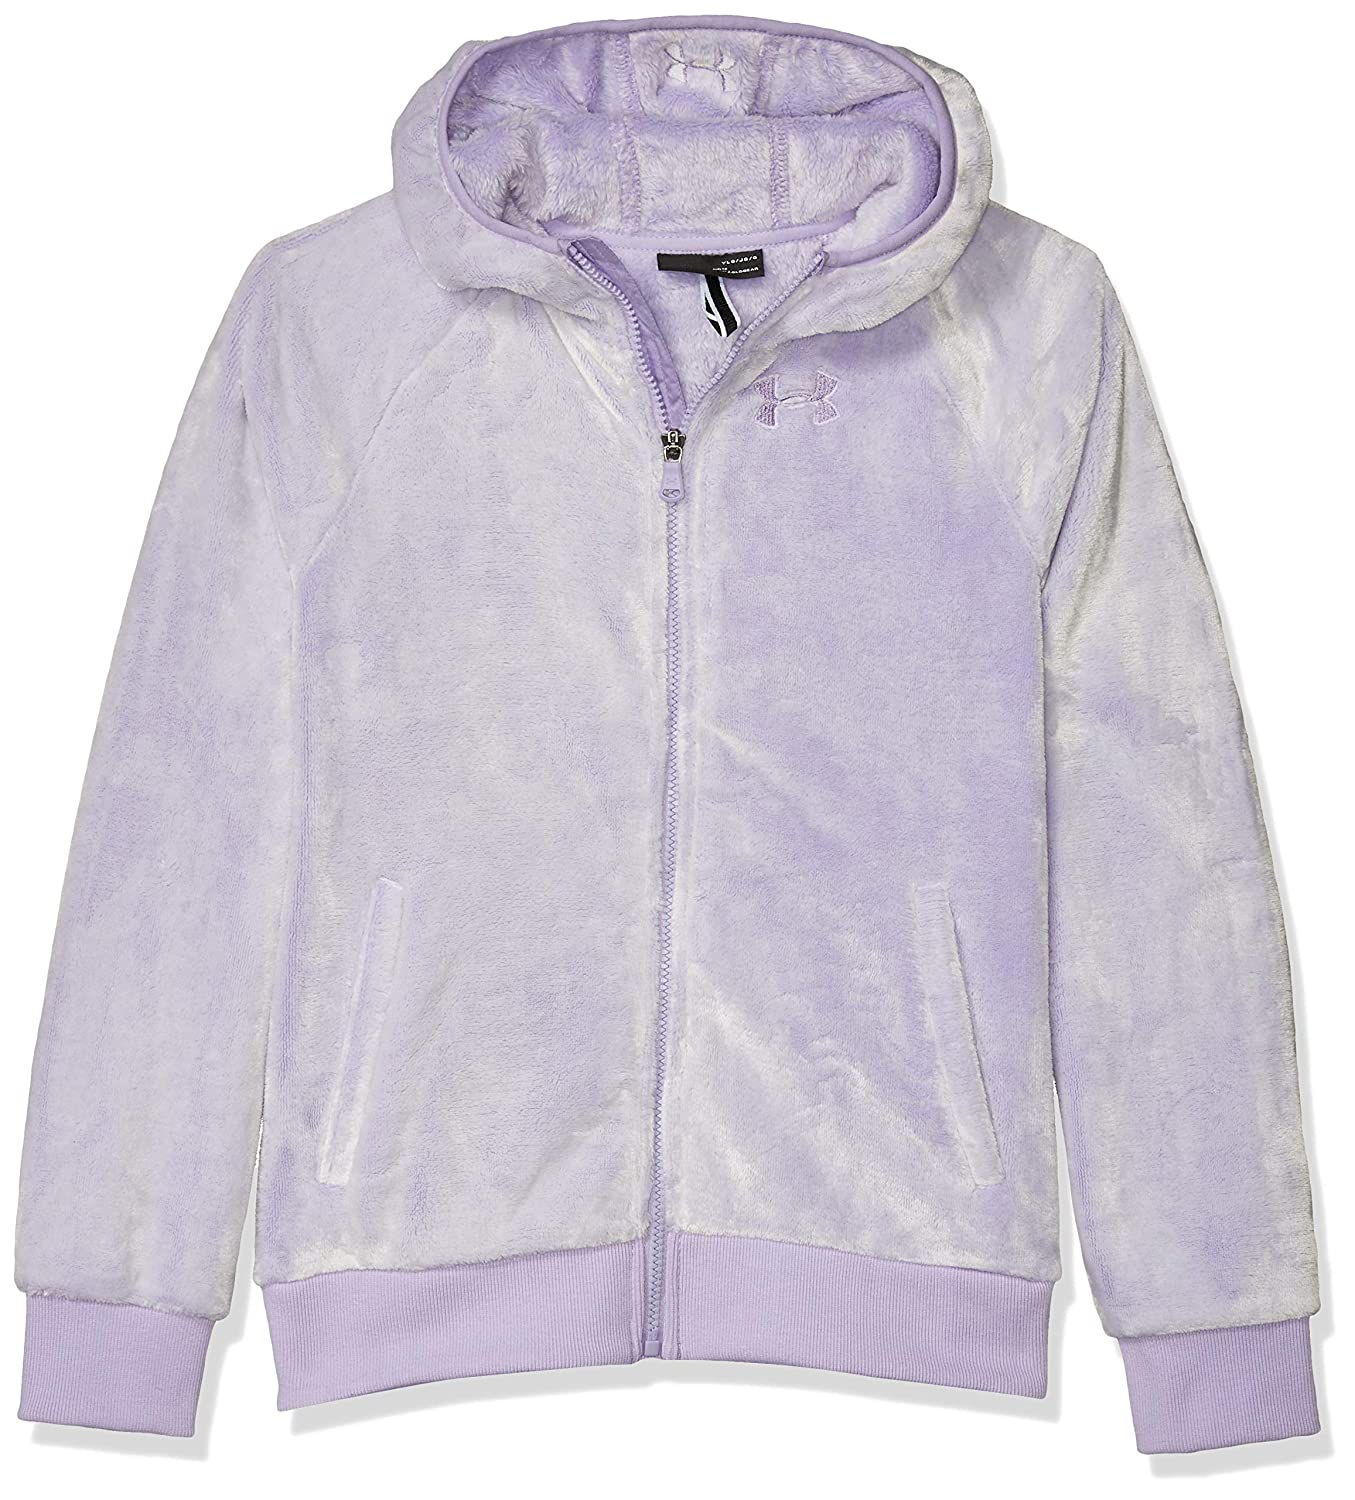 Under Armour Girls ColdGear Cozy Hooded Jacket with Pocket